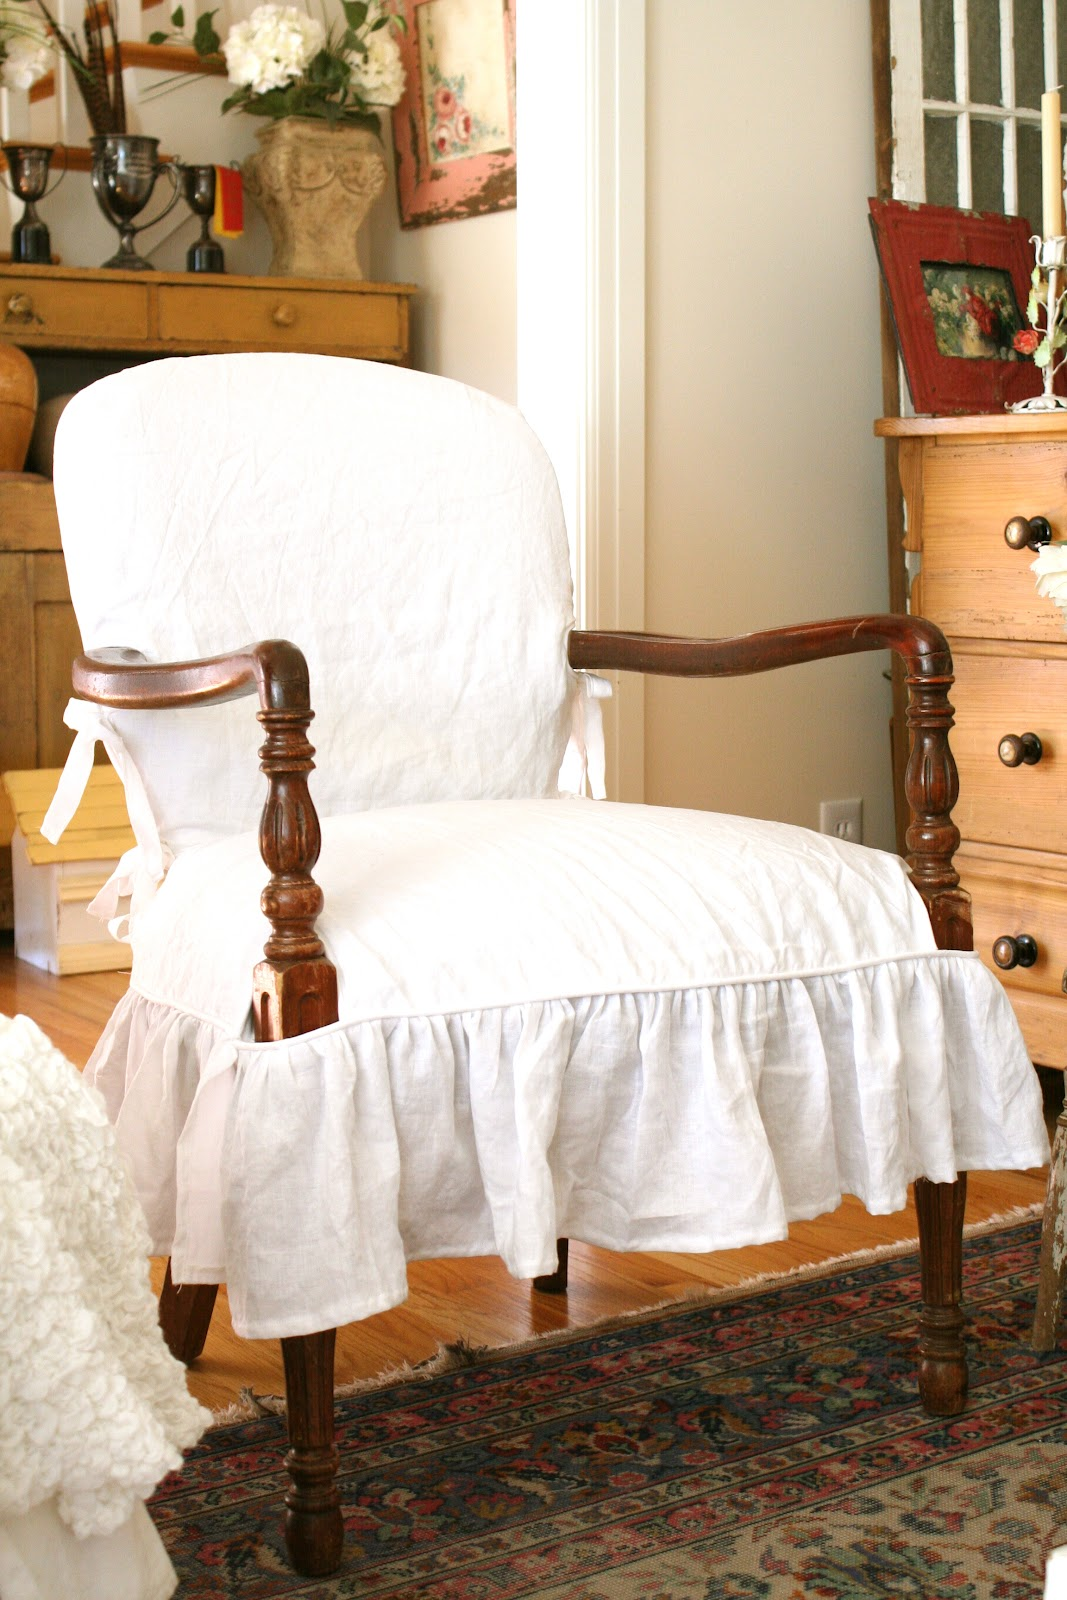 How To Slipcover A Chair With Arms Curved Corner Custom Slipcovers By Shelley Wood Arm